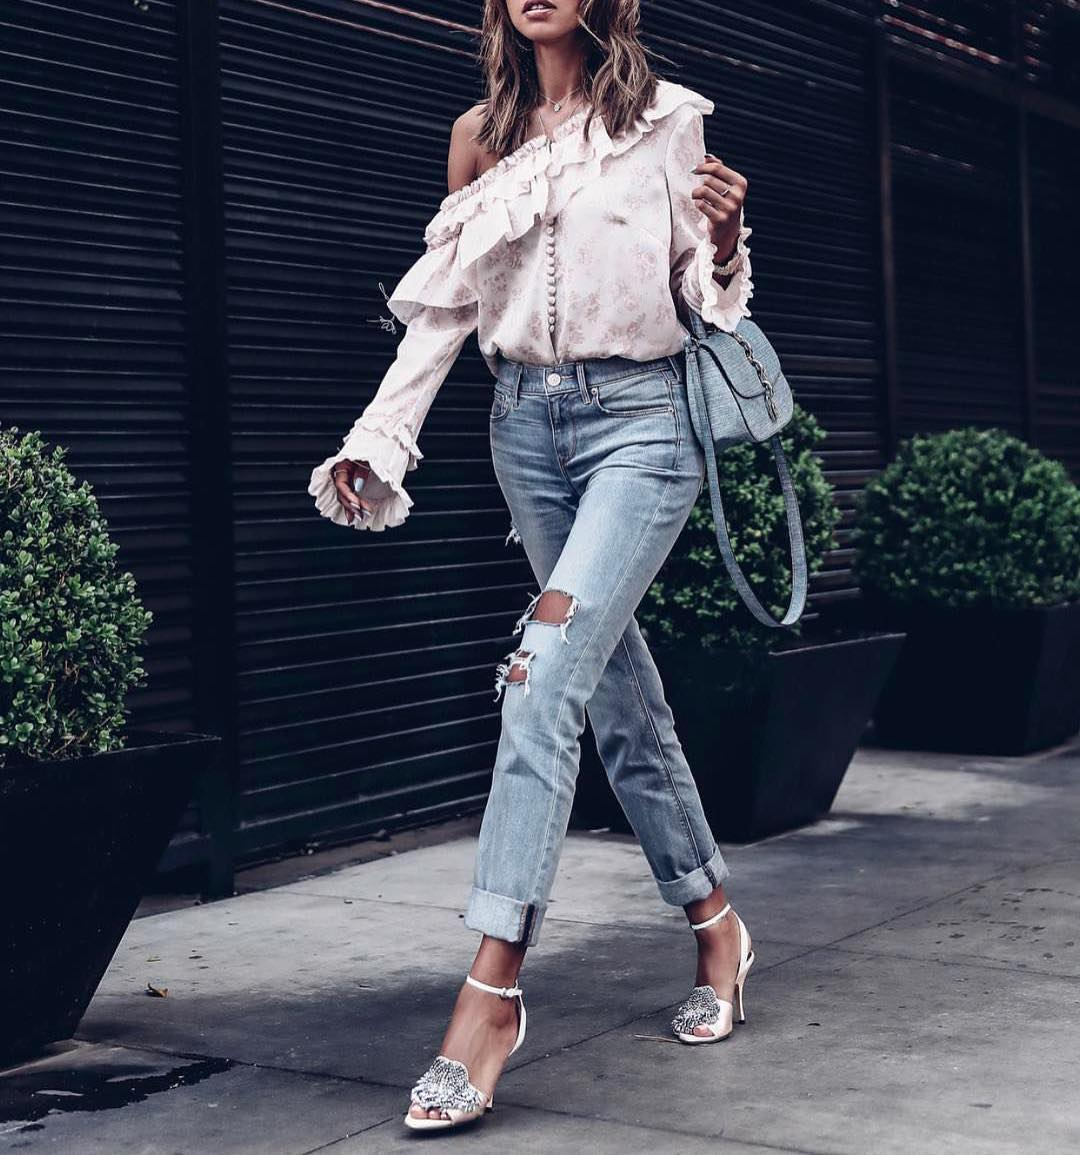 One-Shoulder Ruffled Blouse And Ripped Jeans For Casual Fridays 2021